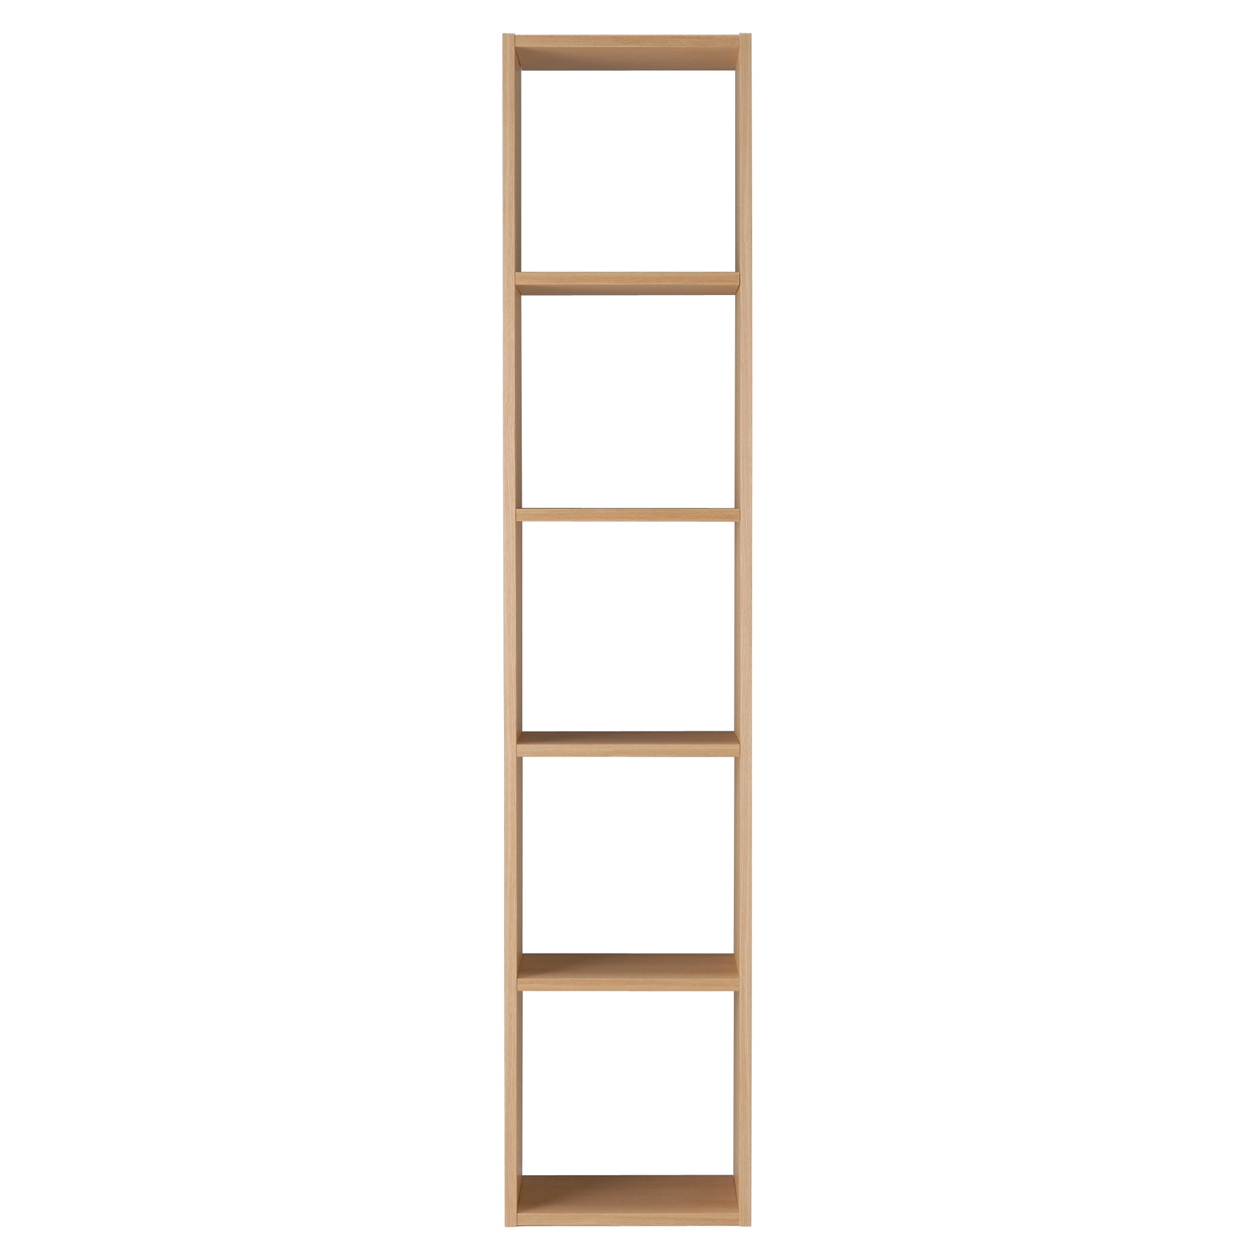 Amazing Stacking Shelf 5 Shelves Oak W42 D28 5 H200Cm Muji Home Interior And Landscaping Dextoversignezvosmurscom